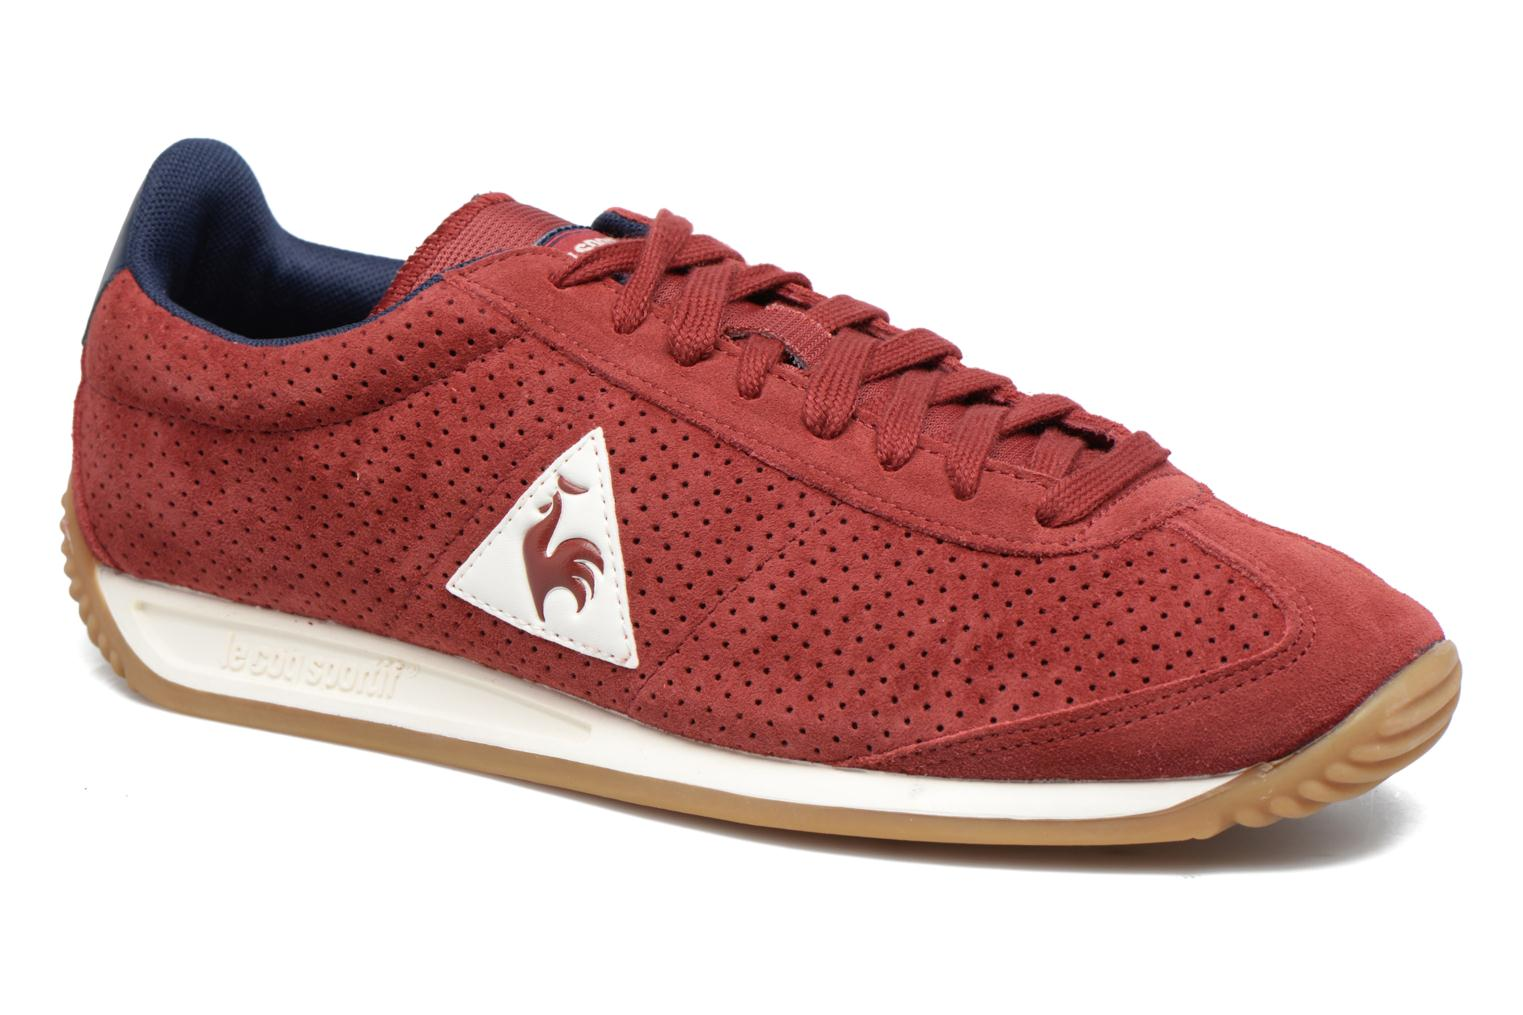 Baskets Le Coq Sportif Quartz Perforated Nubuck Rouge vue détail/paire